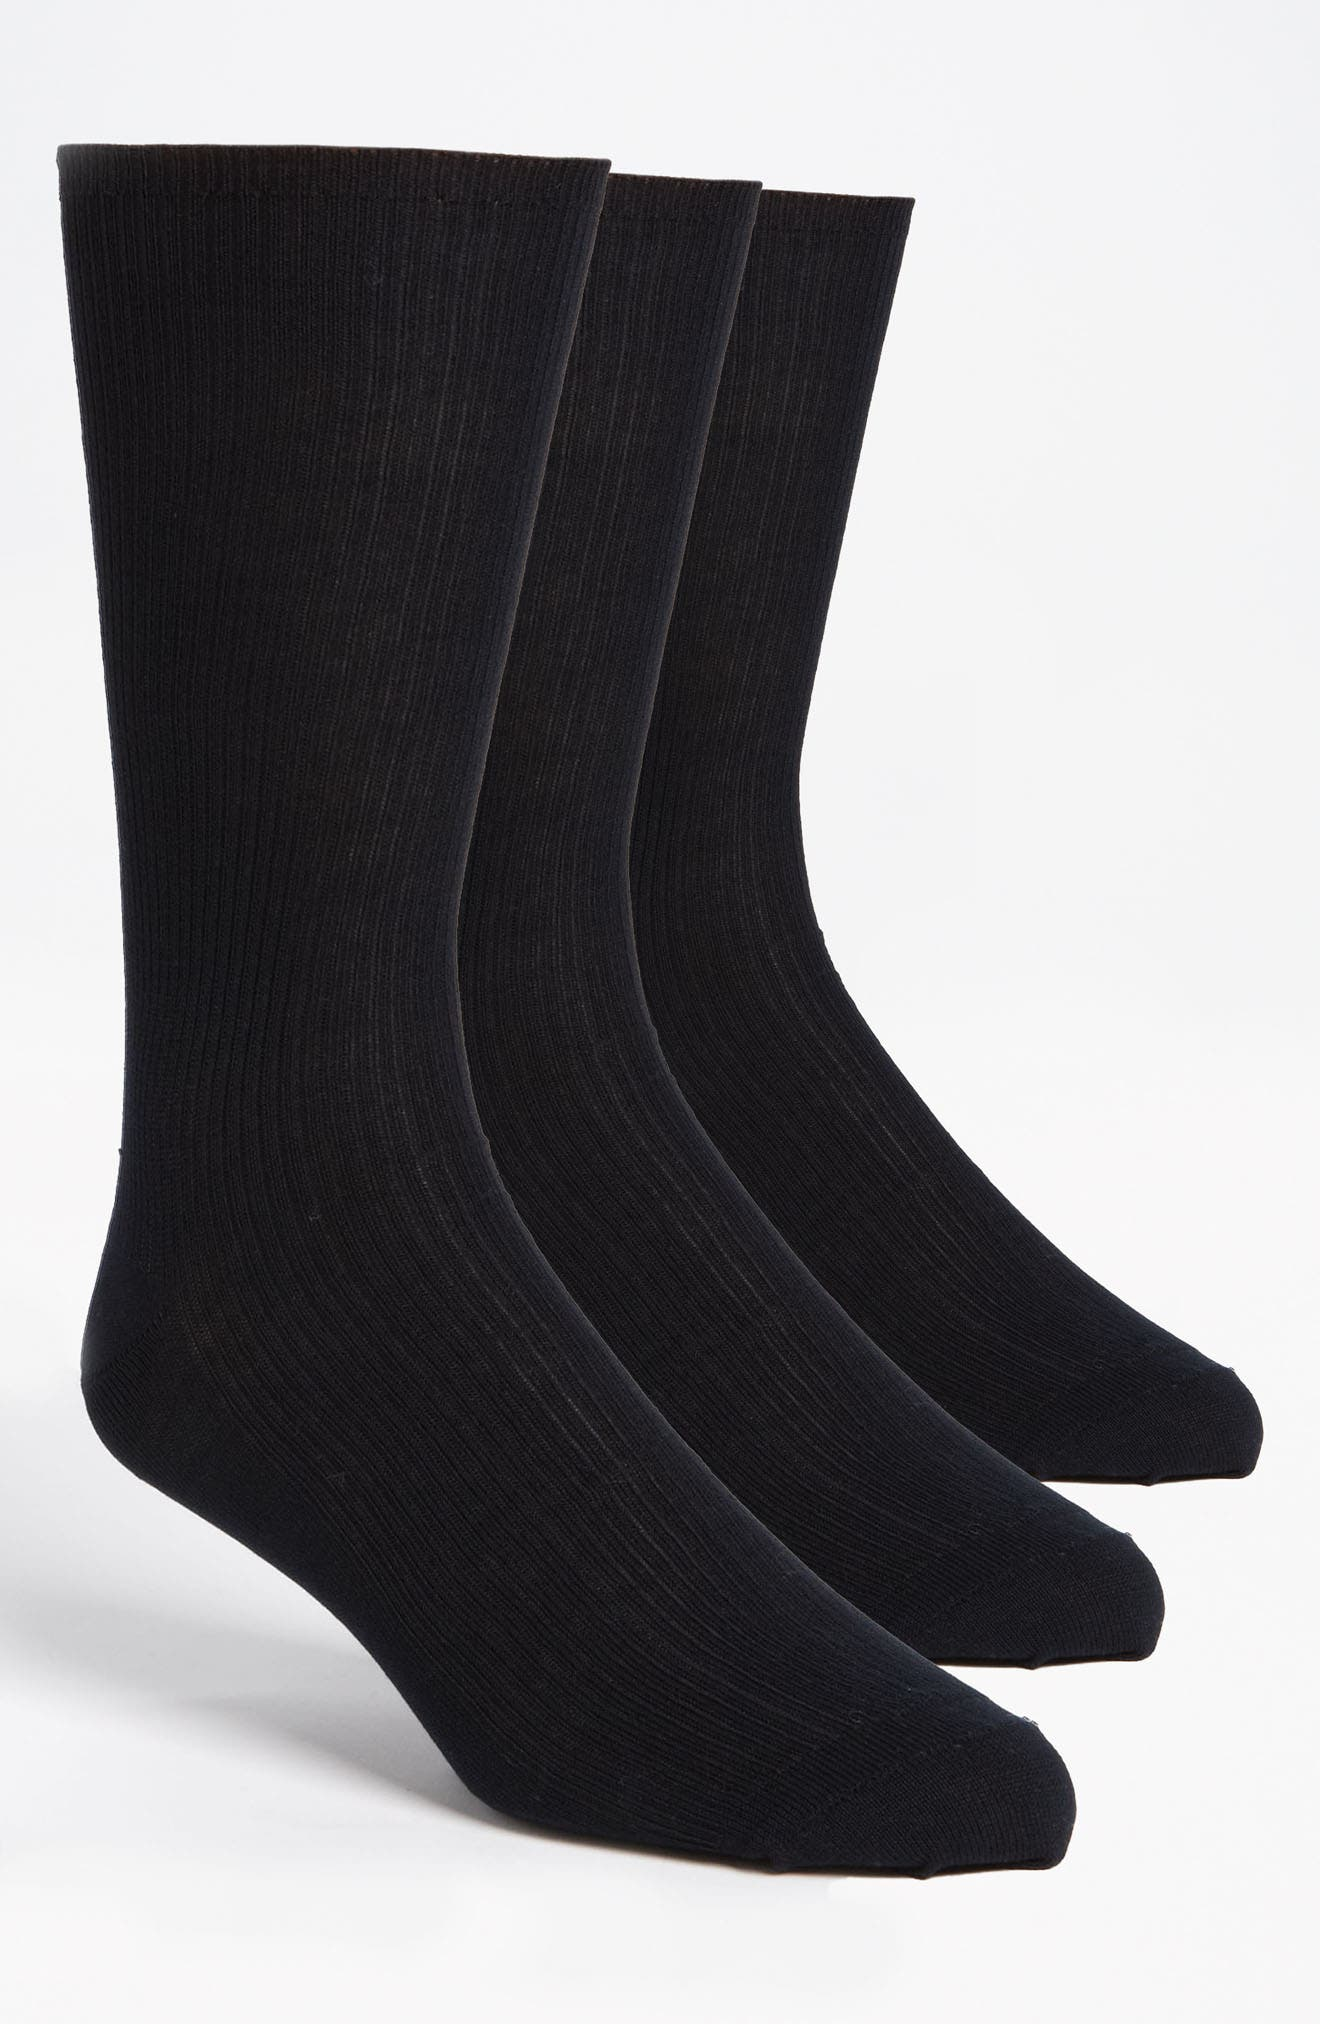 Main Image - Calvin Klein Cotton Blend Dress Socks (3-Pack)